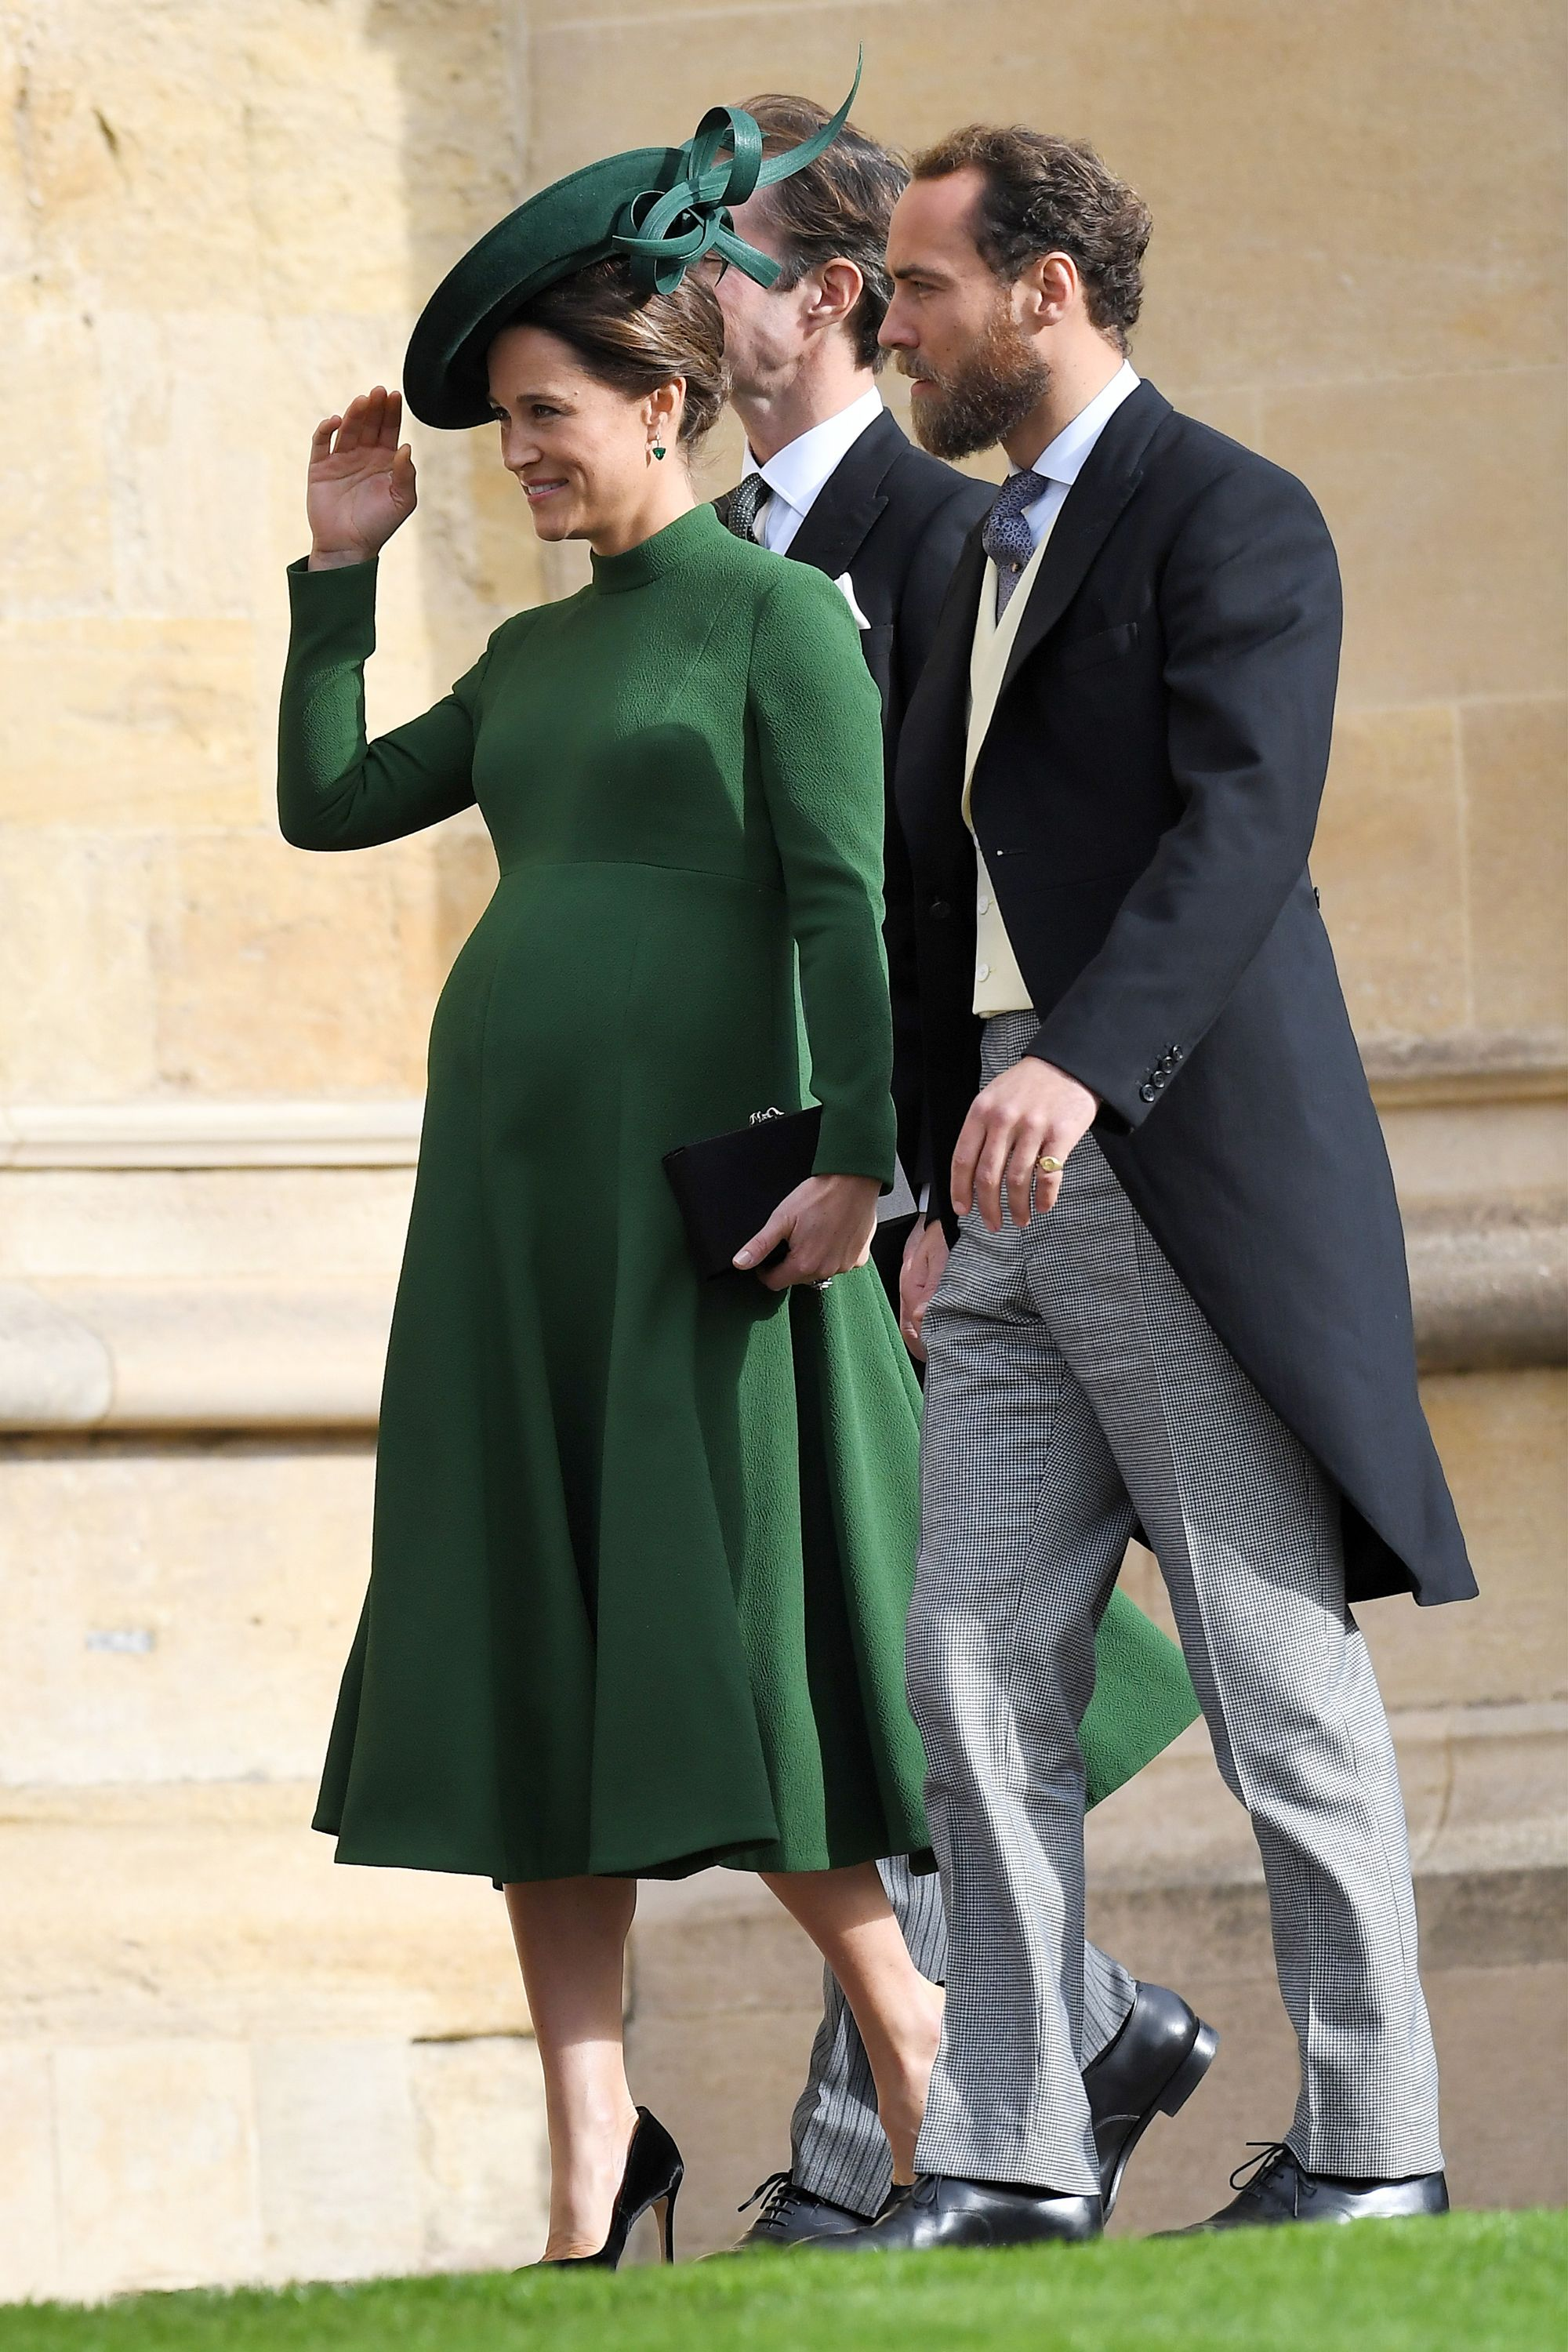 The wedding of Princess Eugenie and Jack Brooksbank, Pre-Ceremony, Windsor, Berkshire, UK - 12 Oct 2019